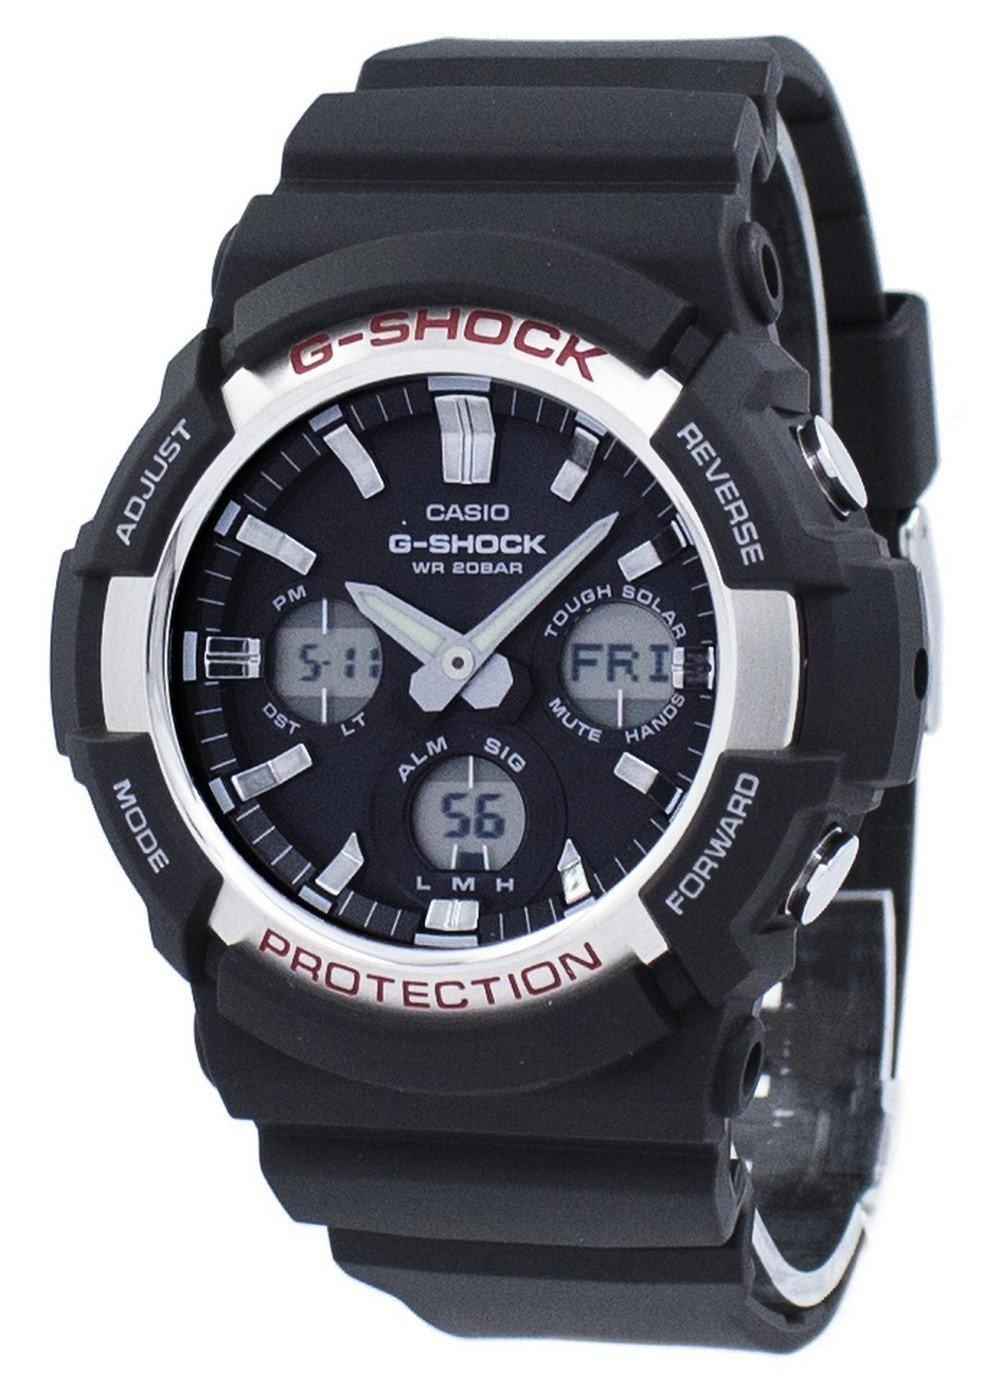 Casio G-Shock Shock Resistant Tough Solar GAS-100-1A GAS100-1A Men's Watch